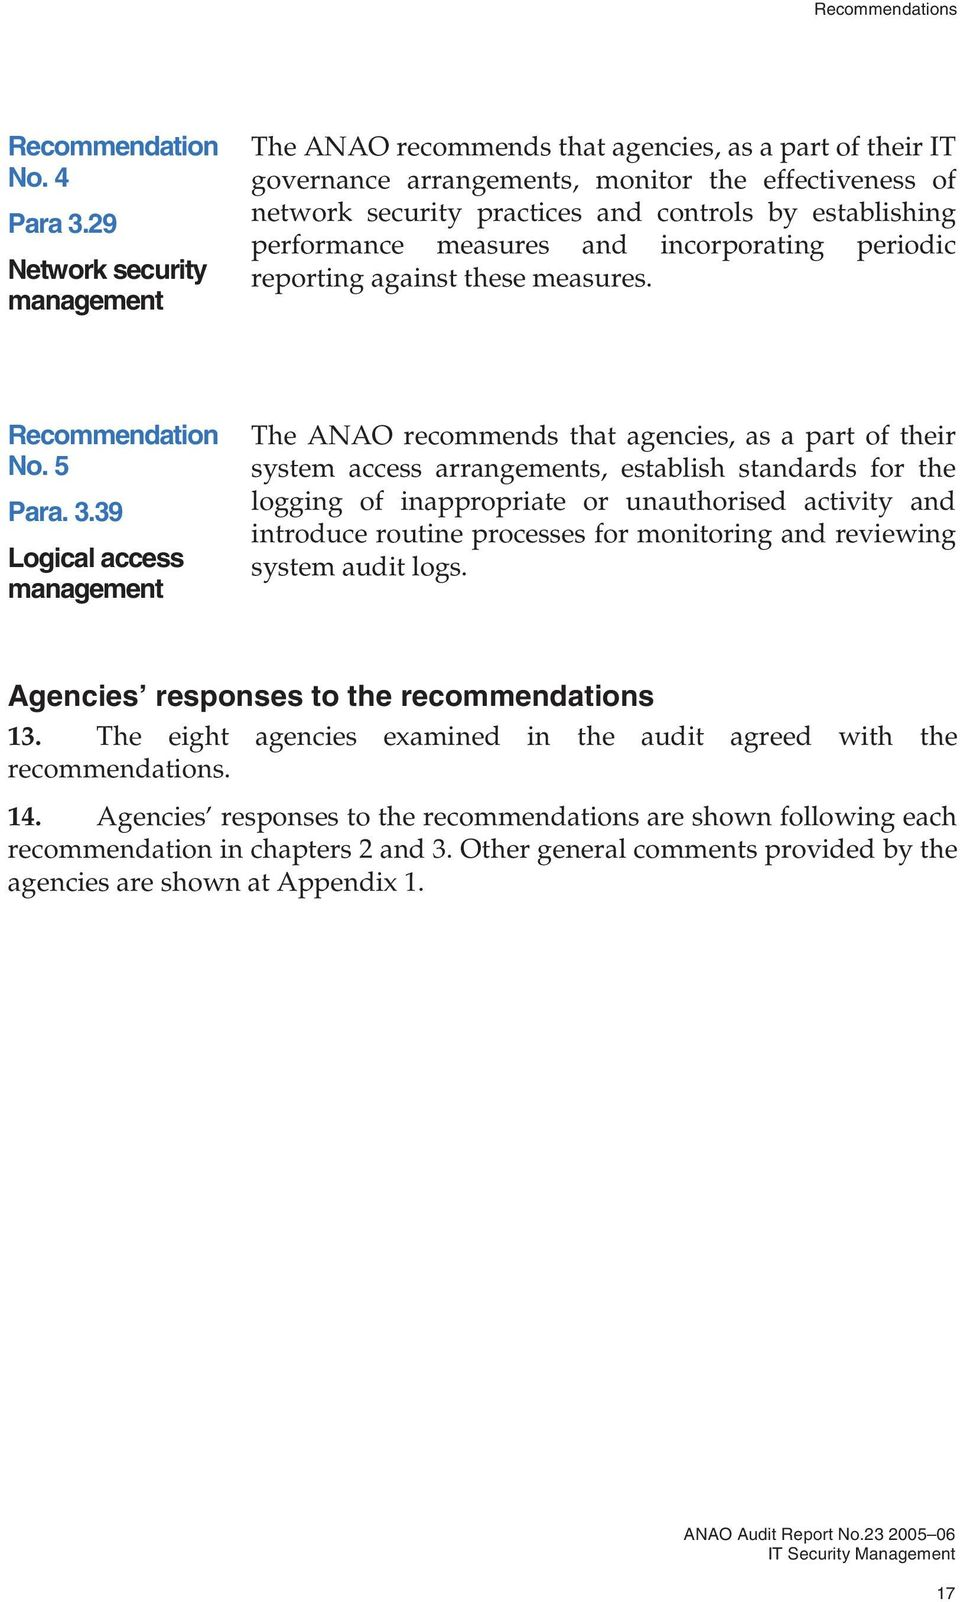 performance measures and incorporating periodic reporting against these measures. Recommendation No. 5 Para. 3.